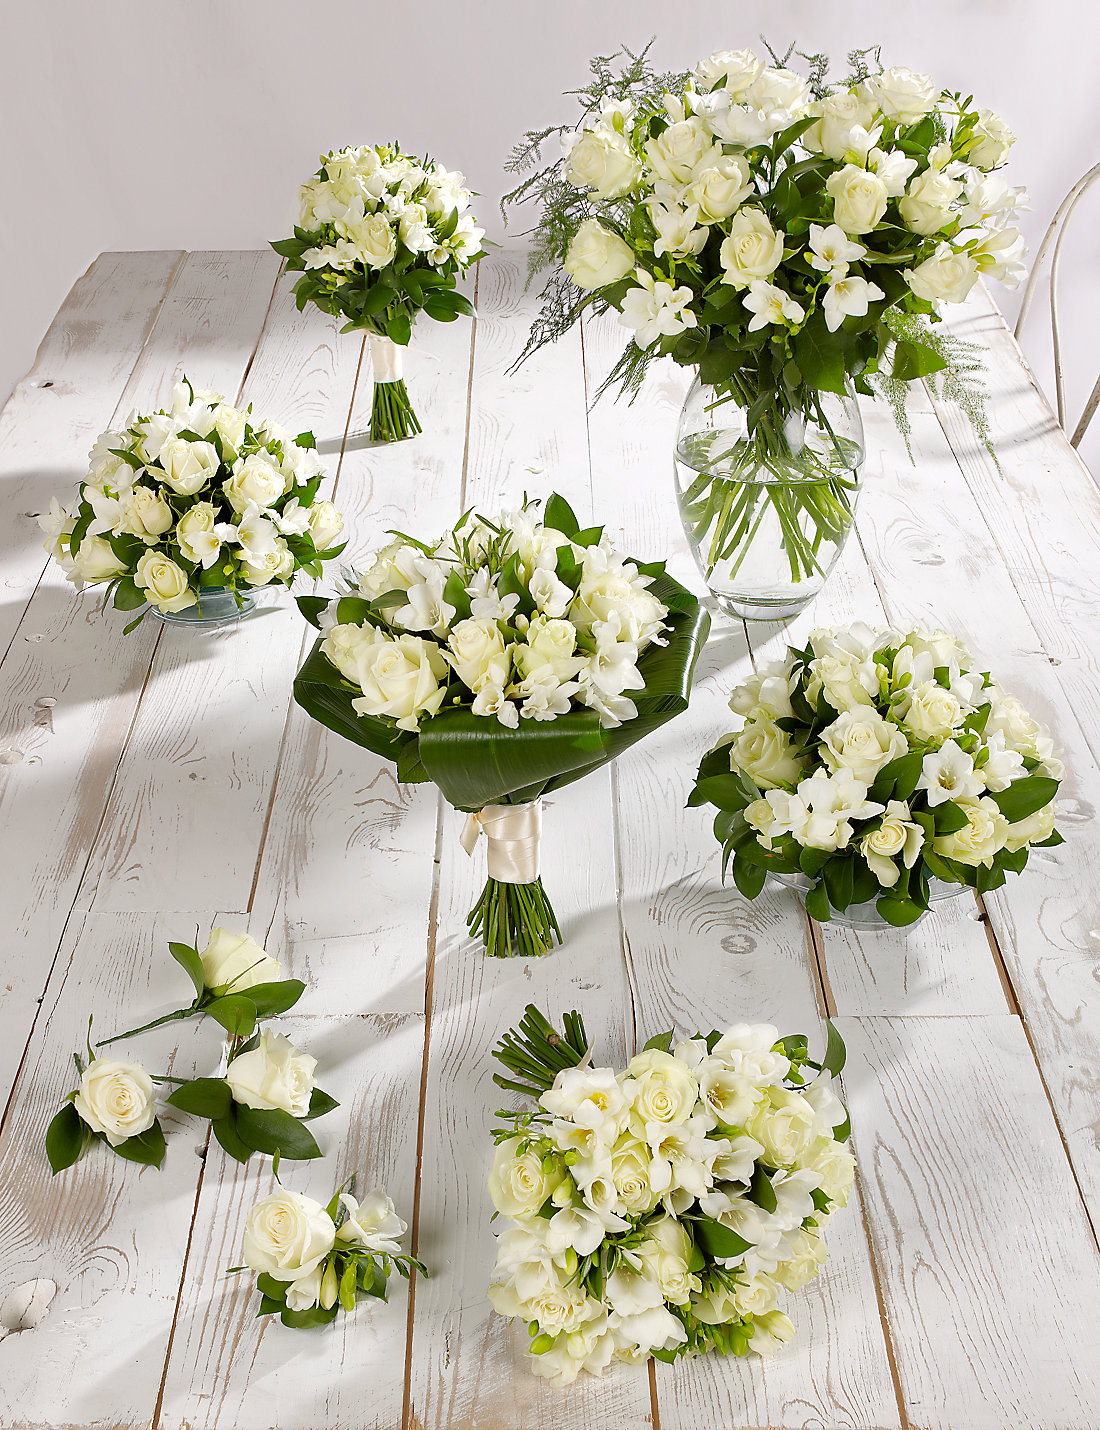 White Rose Freesia Wedding Flowers